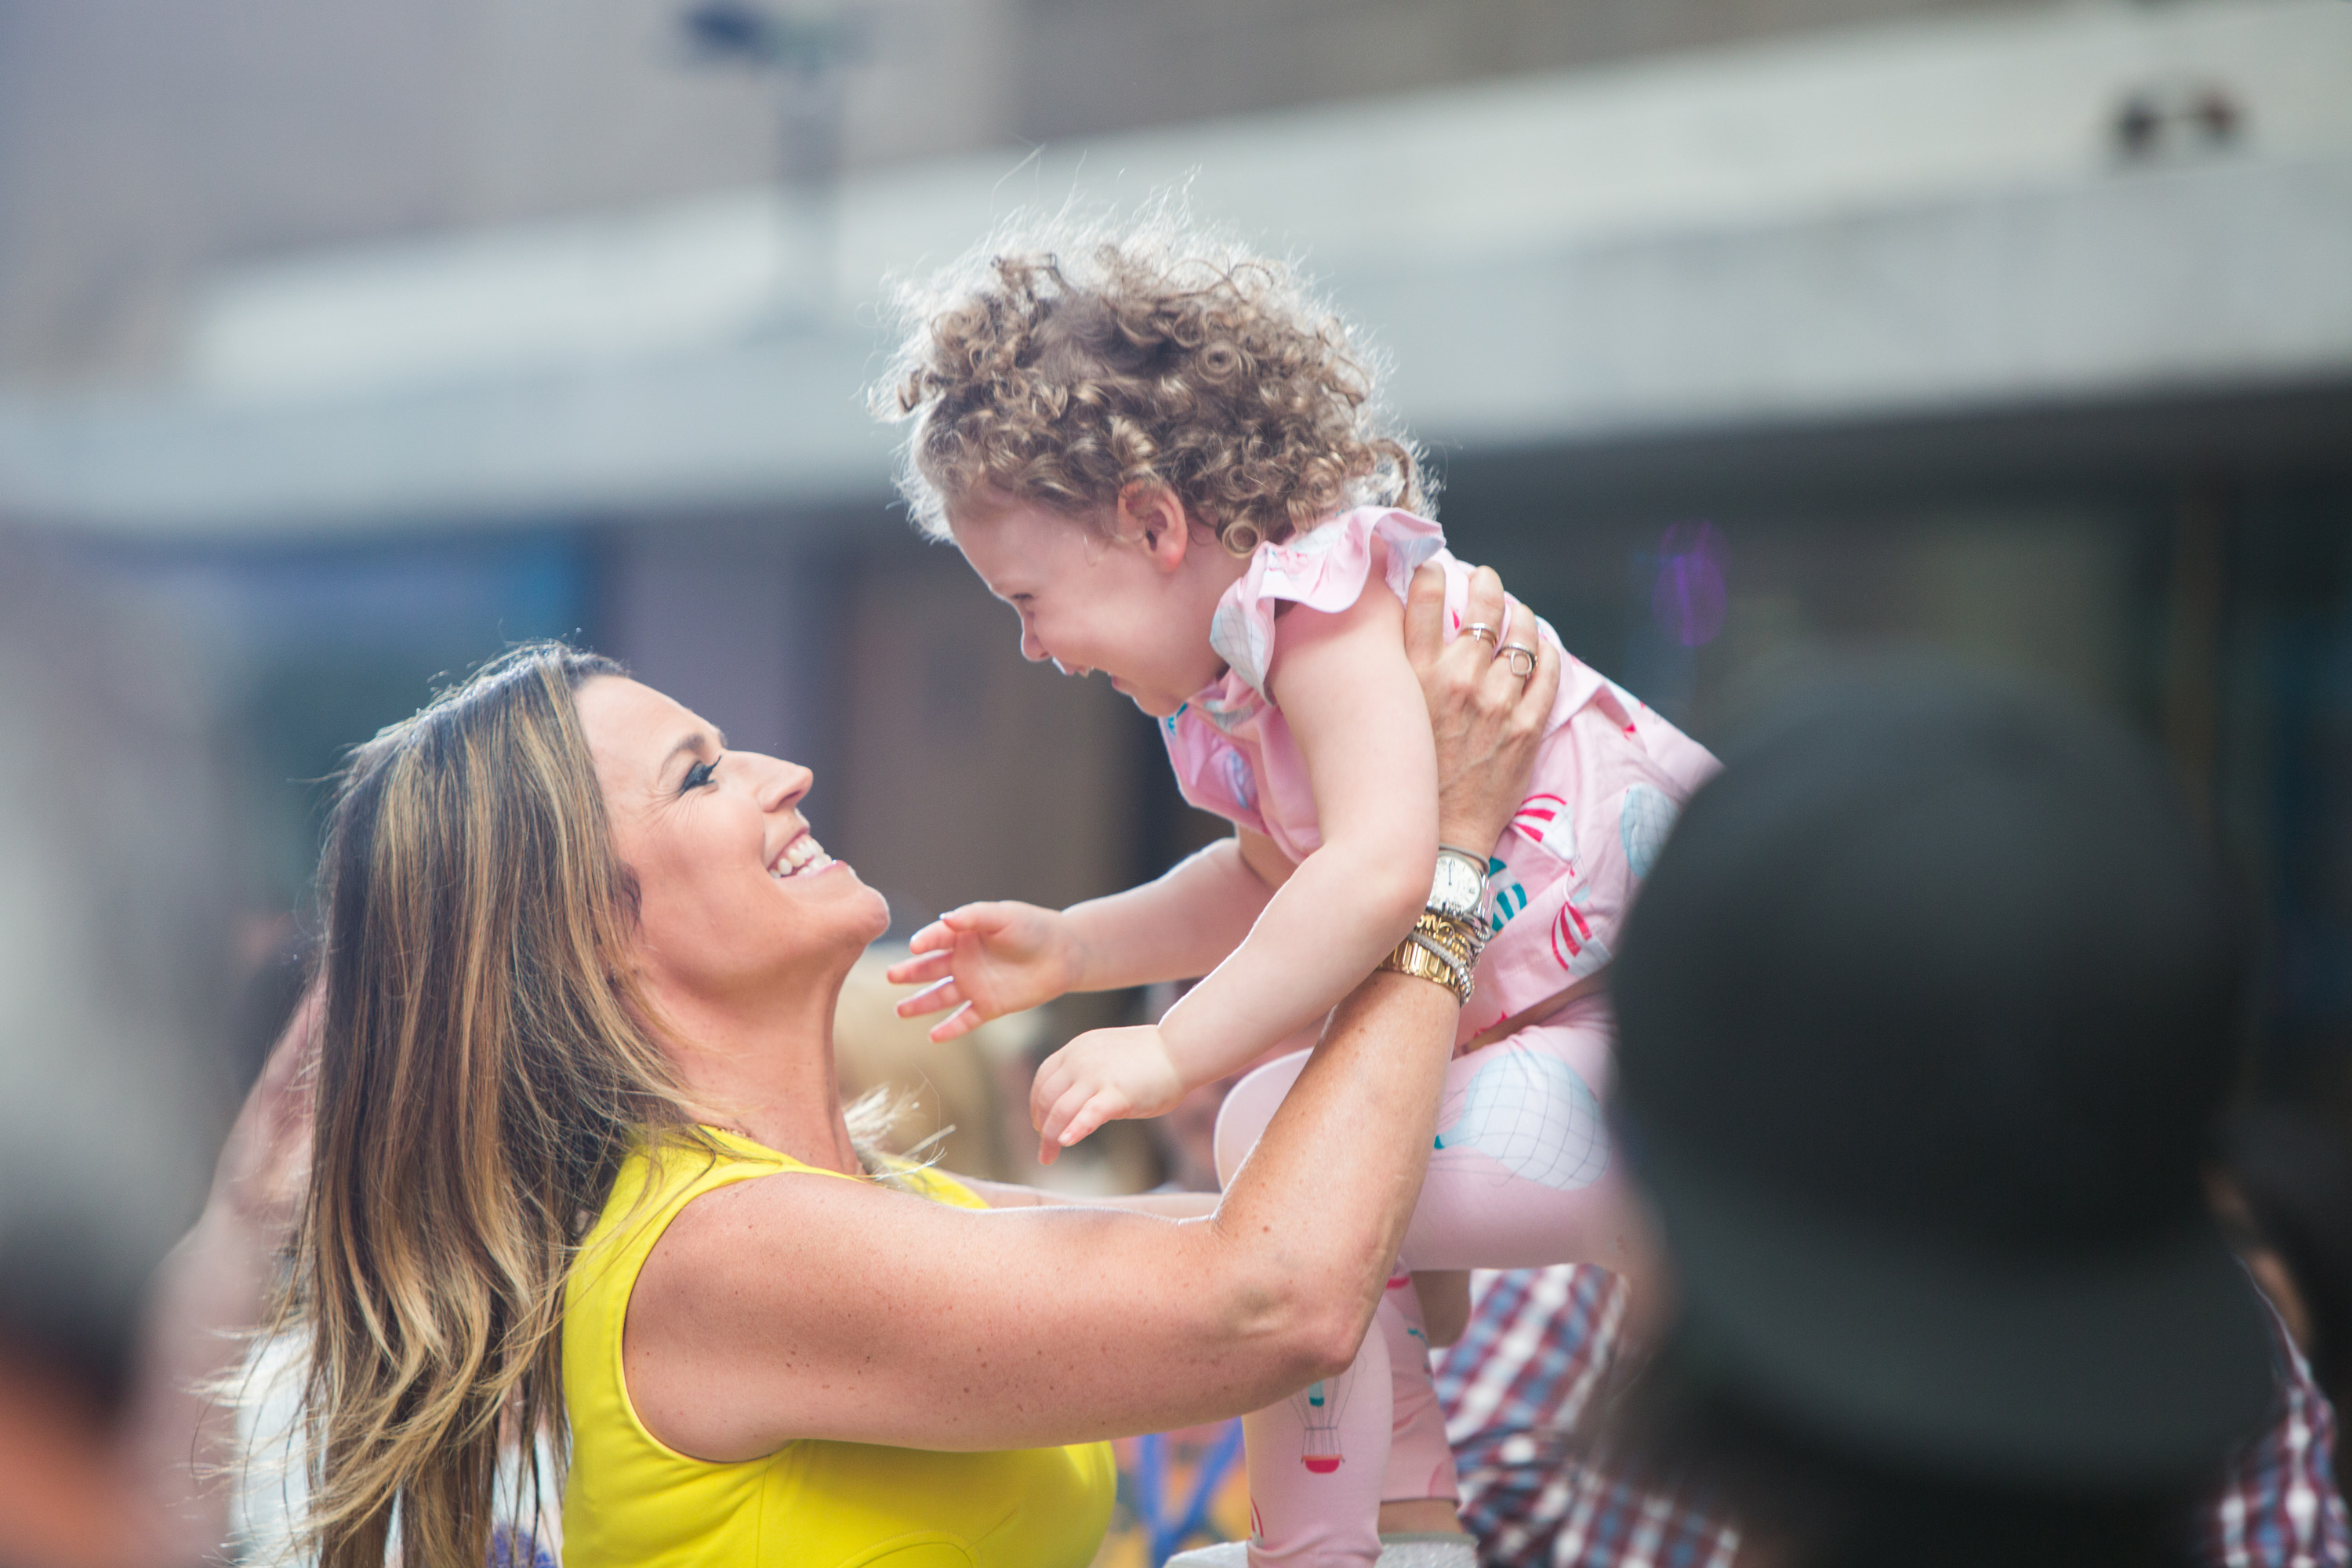 Today Savannah Guthrie Talks About Having Kids In Her 40s I Always Wanted To Be A Mom